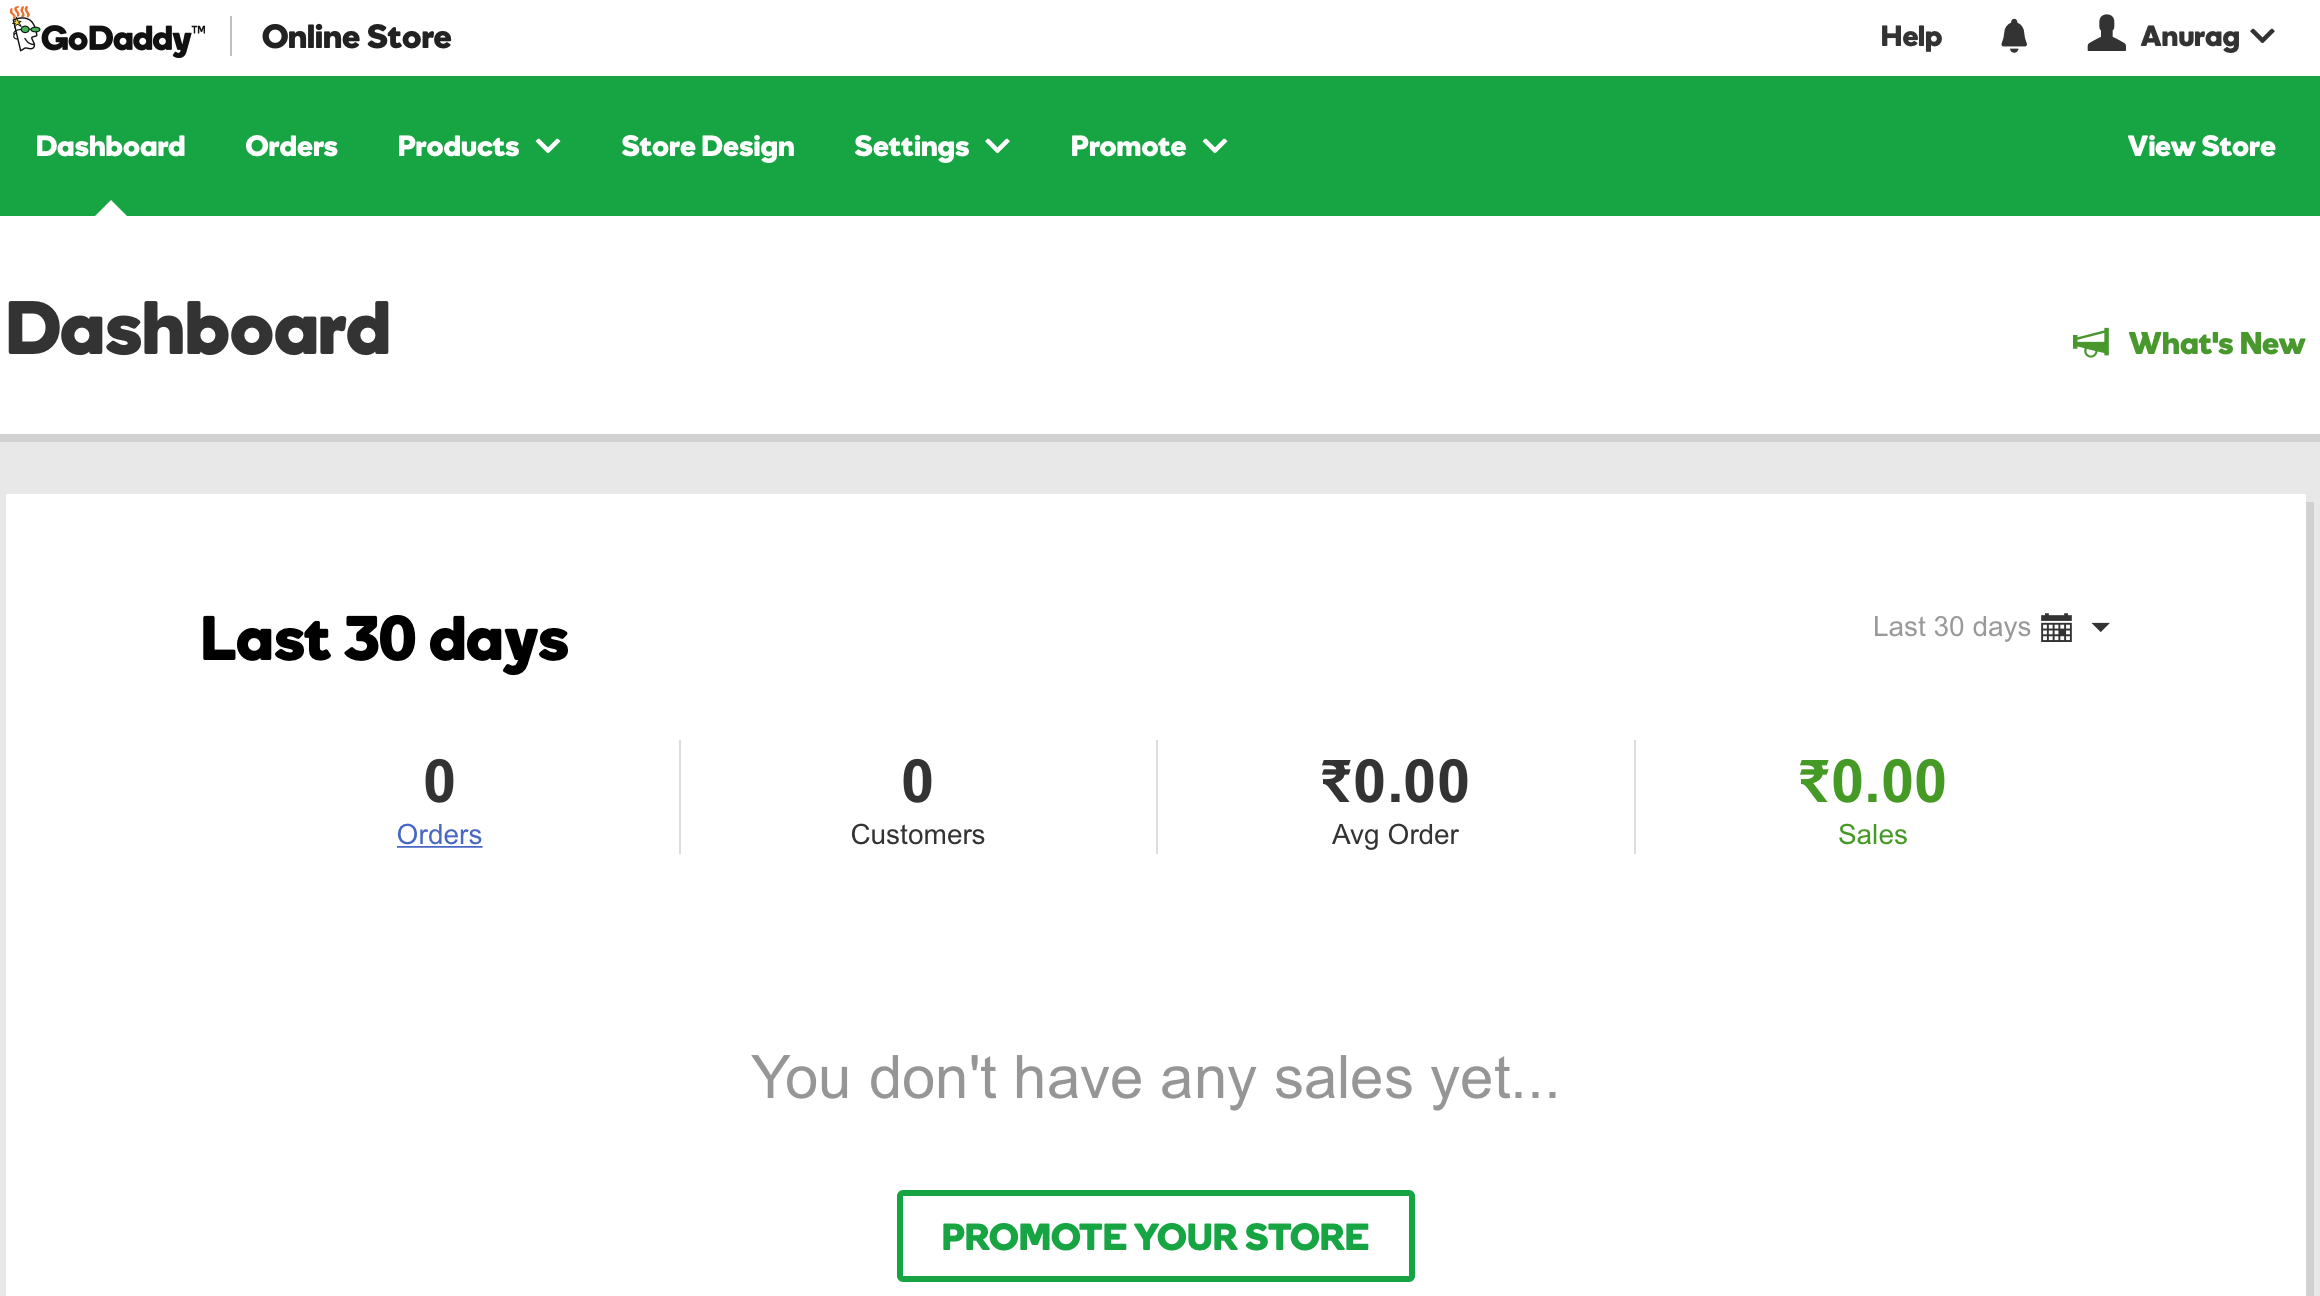 GoDaddy Online Store Dashboard